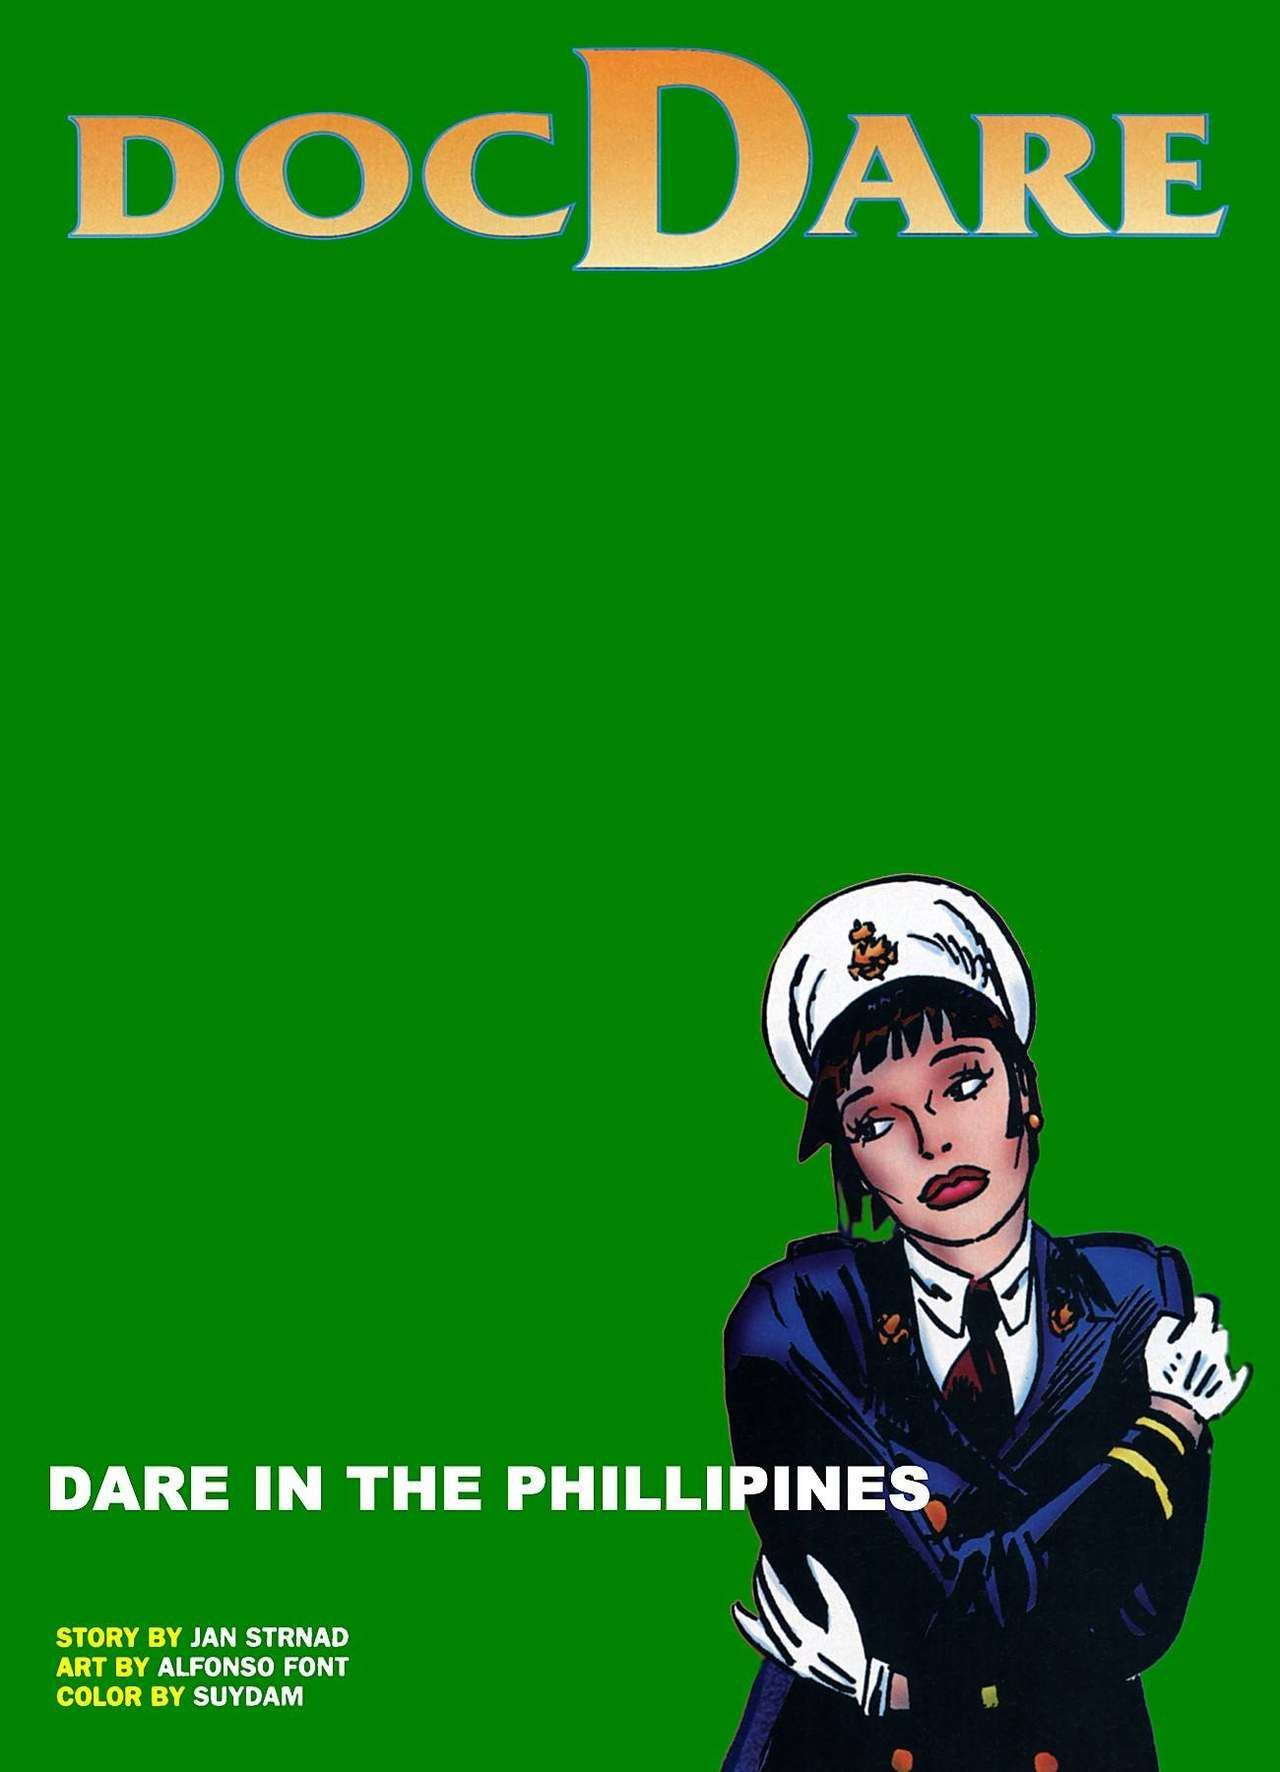 Alfonso Font Doctor Dare - Dare in Phillipines